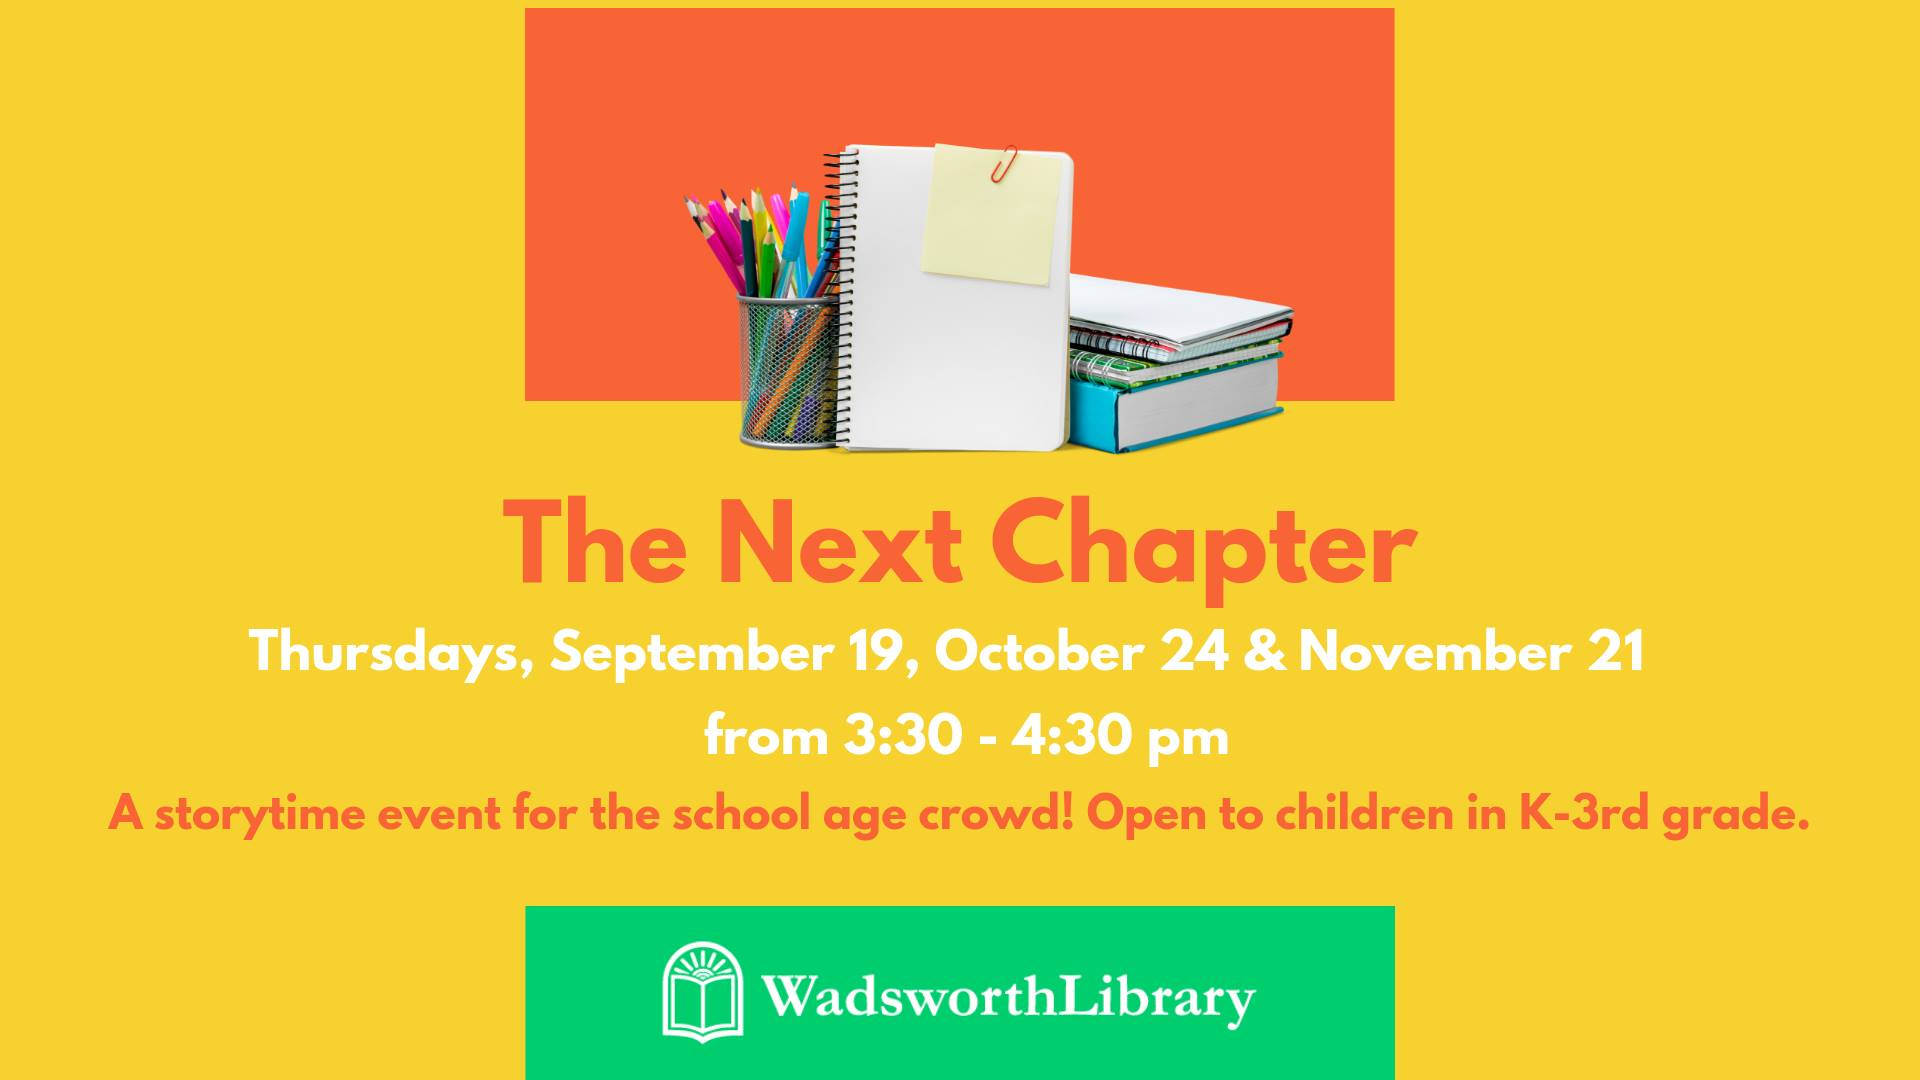 The Next Chapter @ Wadsworth Library